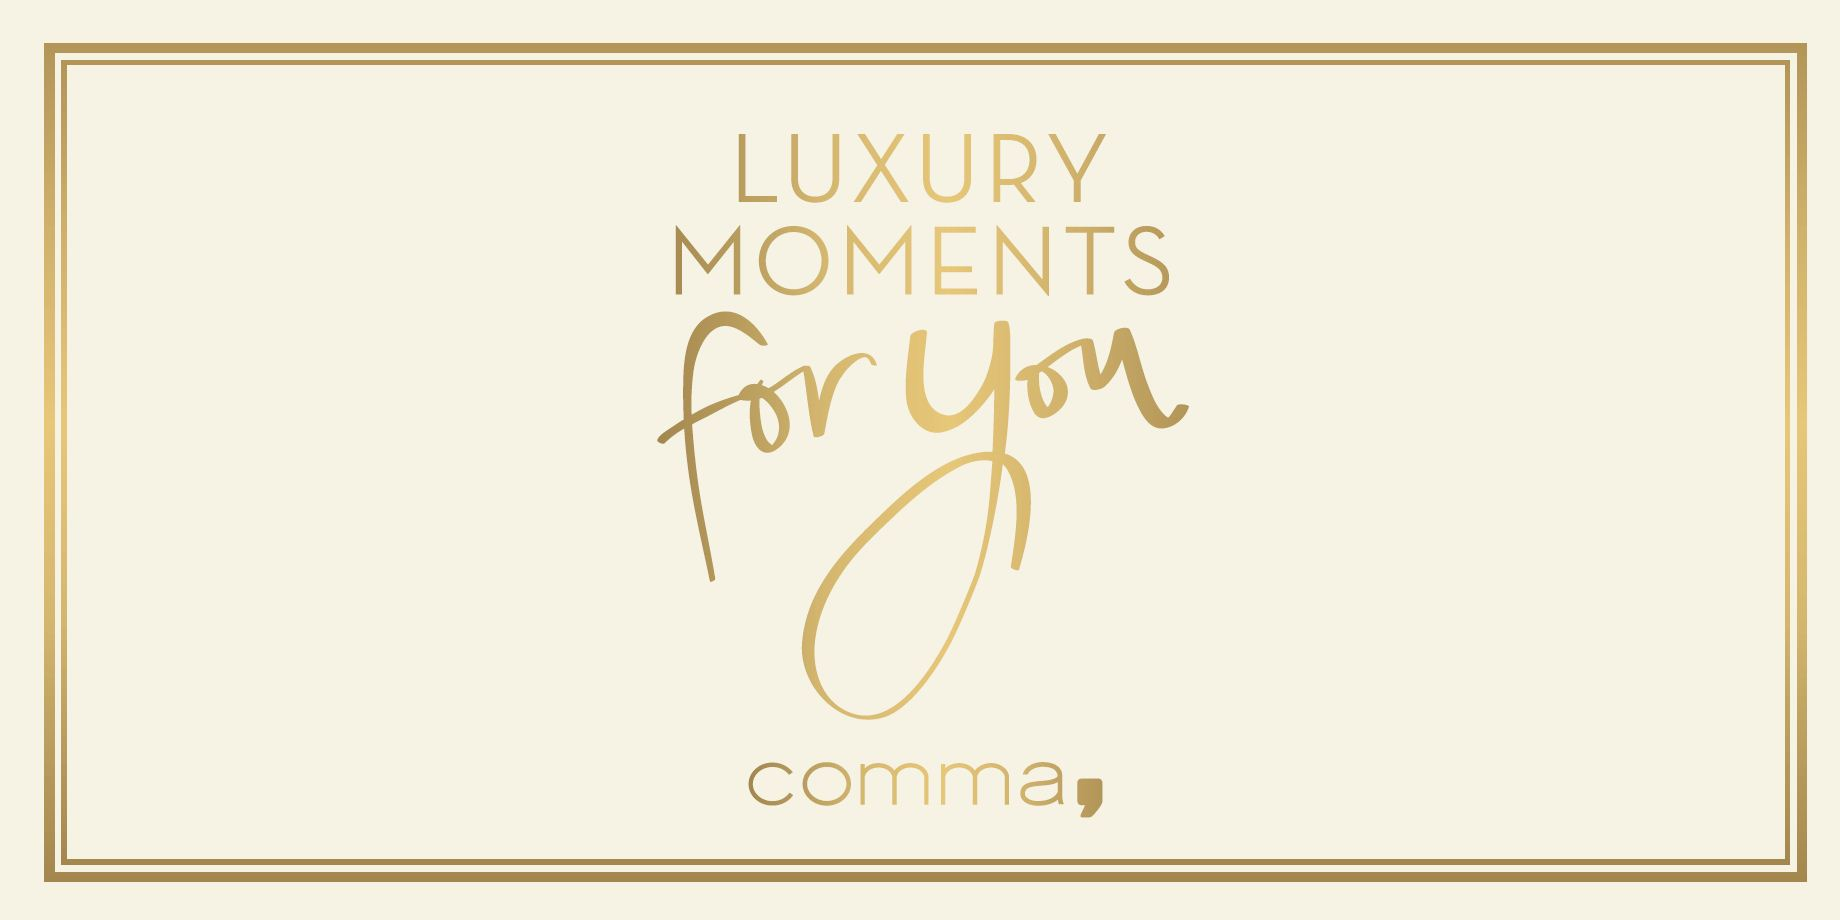 Luxury Moments for you